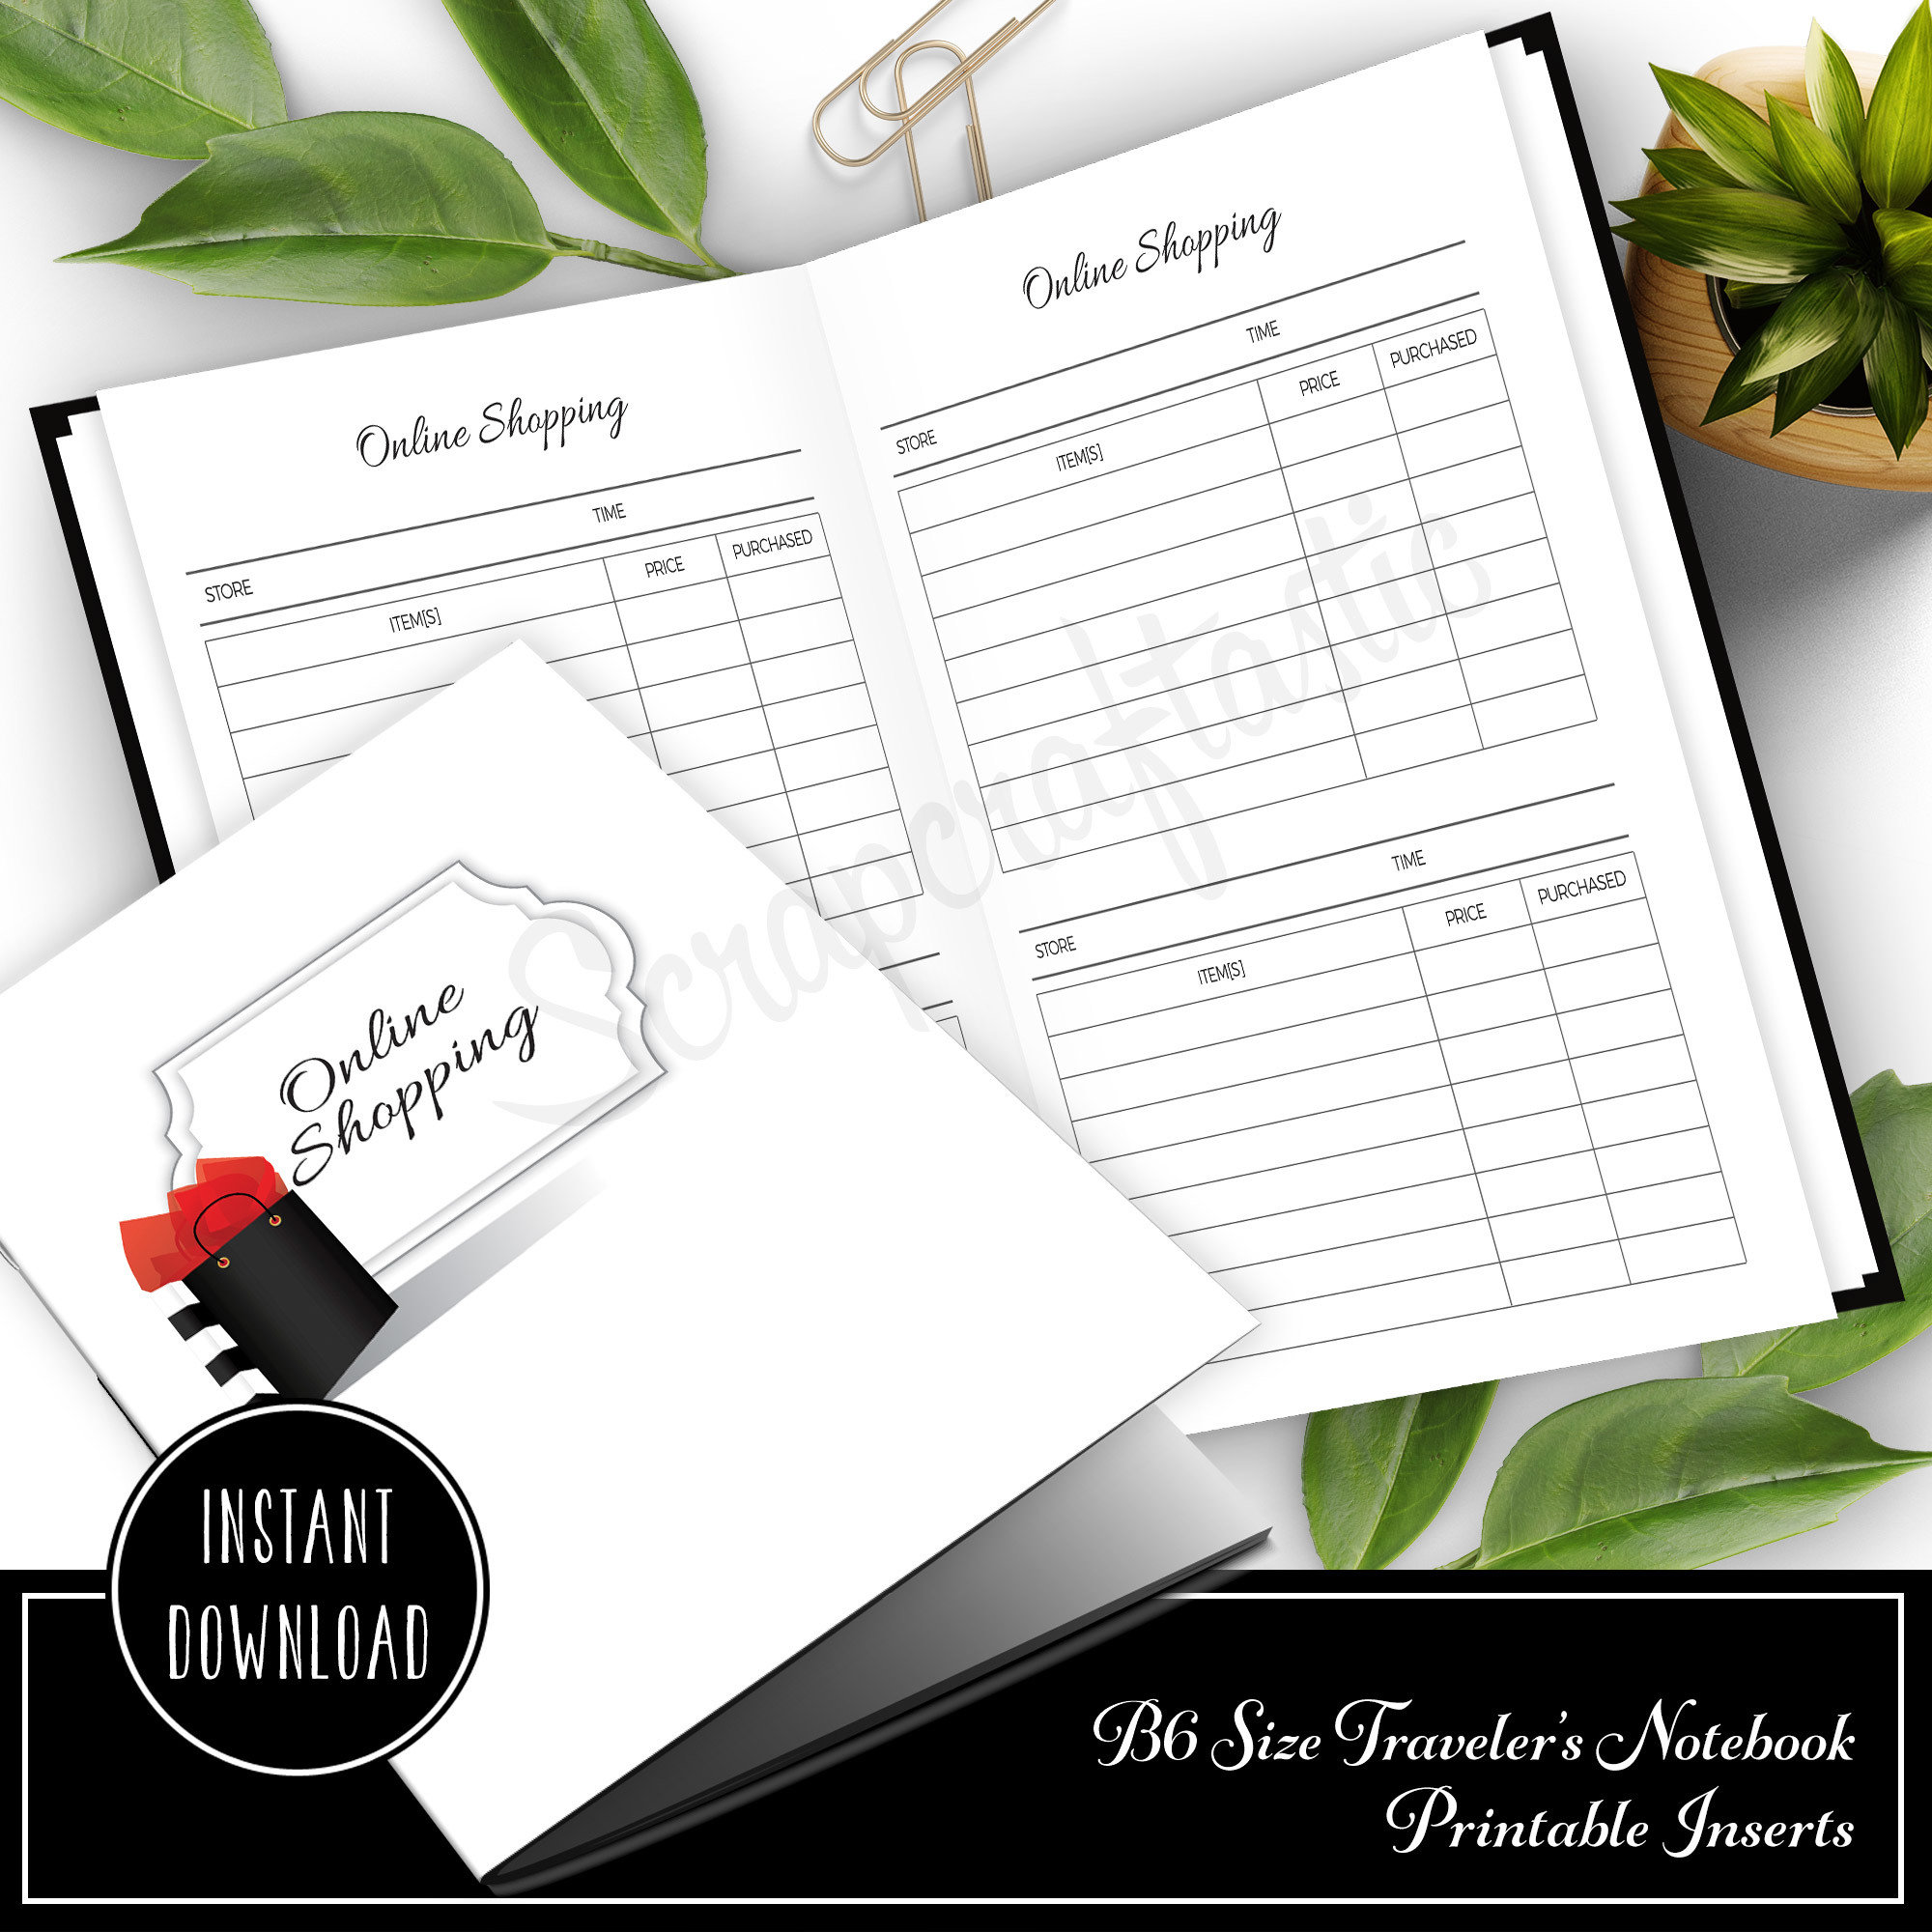 Online Shopping B6 Size Traveler's Notebook Printable Planner Inserts 90007